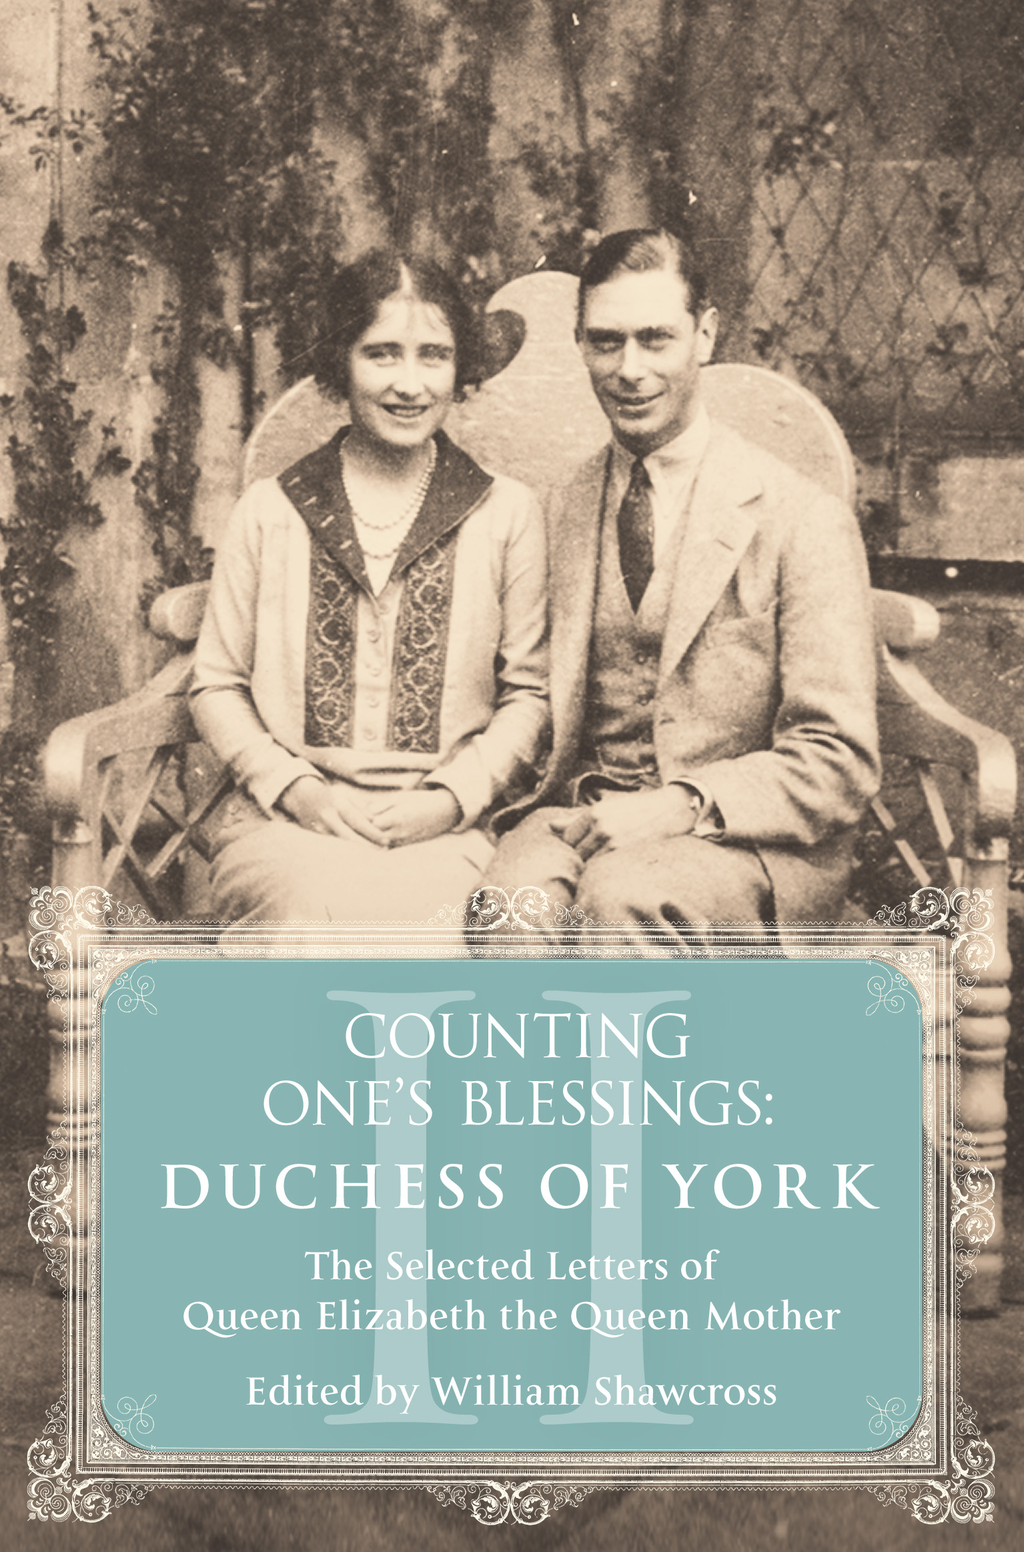 Duchess of York The Selected Letters of Queen Elizabeth the Queen Mother: Part 2